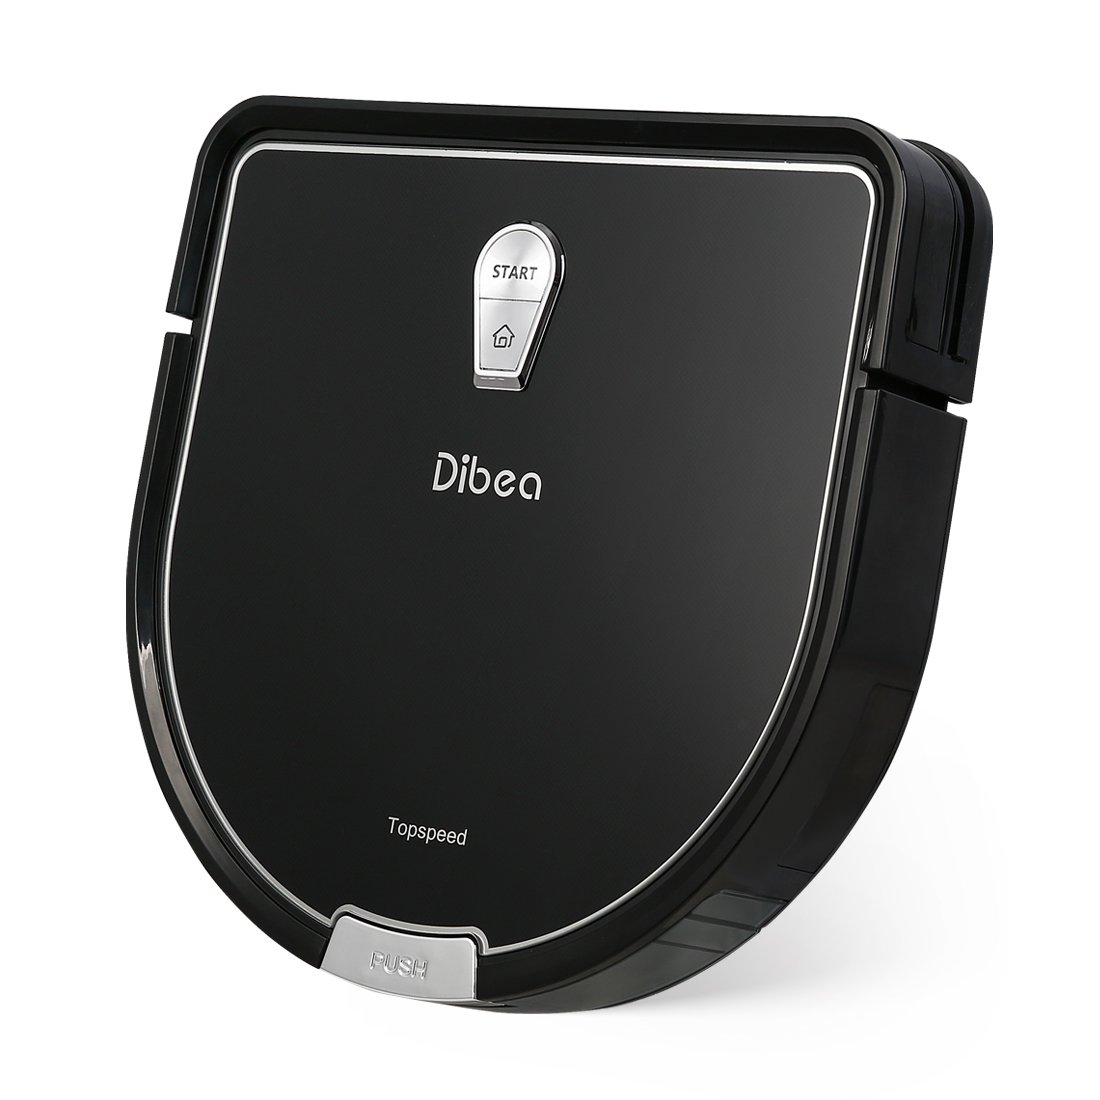 Dibea D960 Robot Vacuum Cleaner, Smart Self-Charging Robot with Precise Edge Cleaning Technology for Pet Hair Thin Carpets